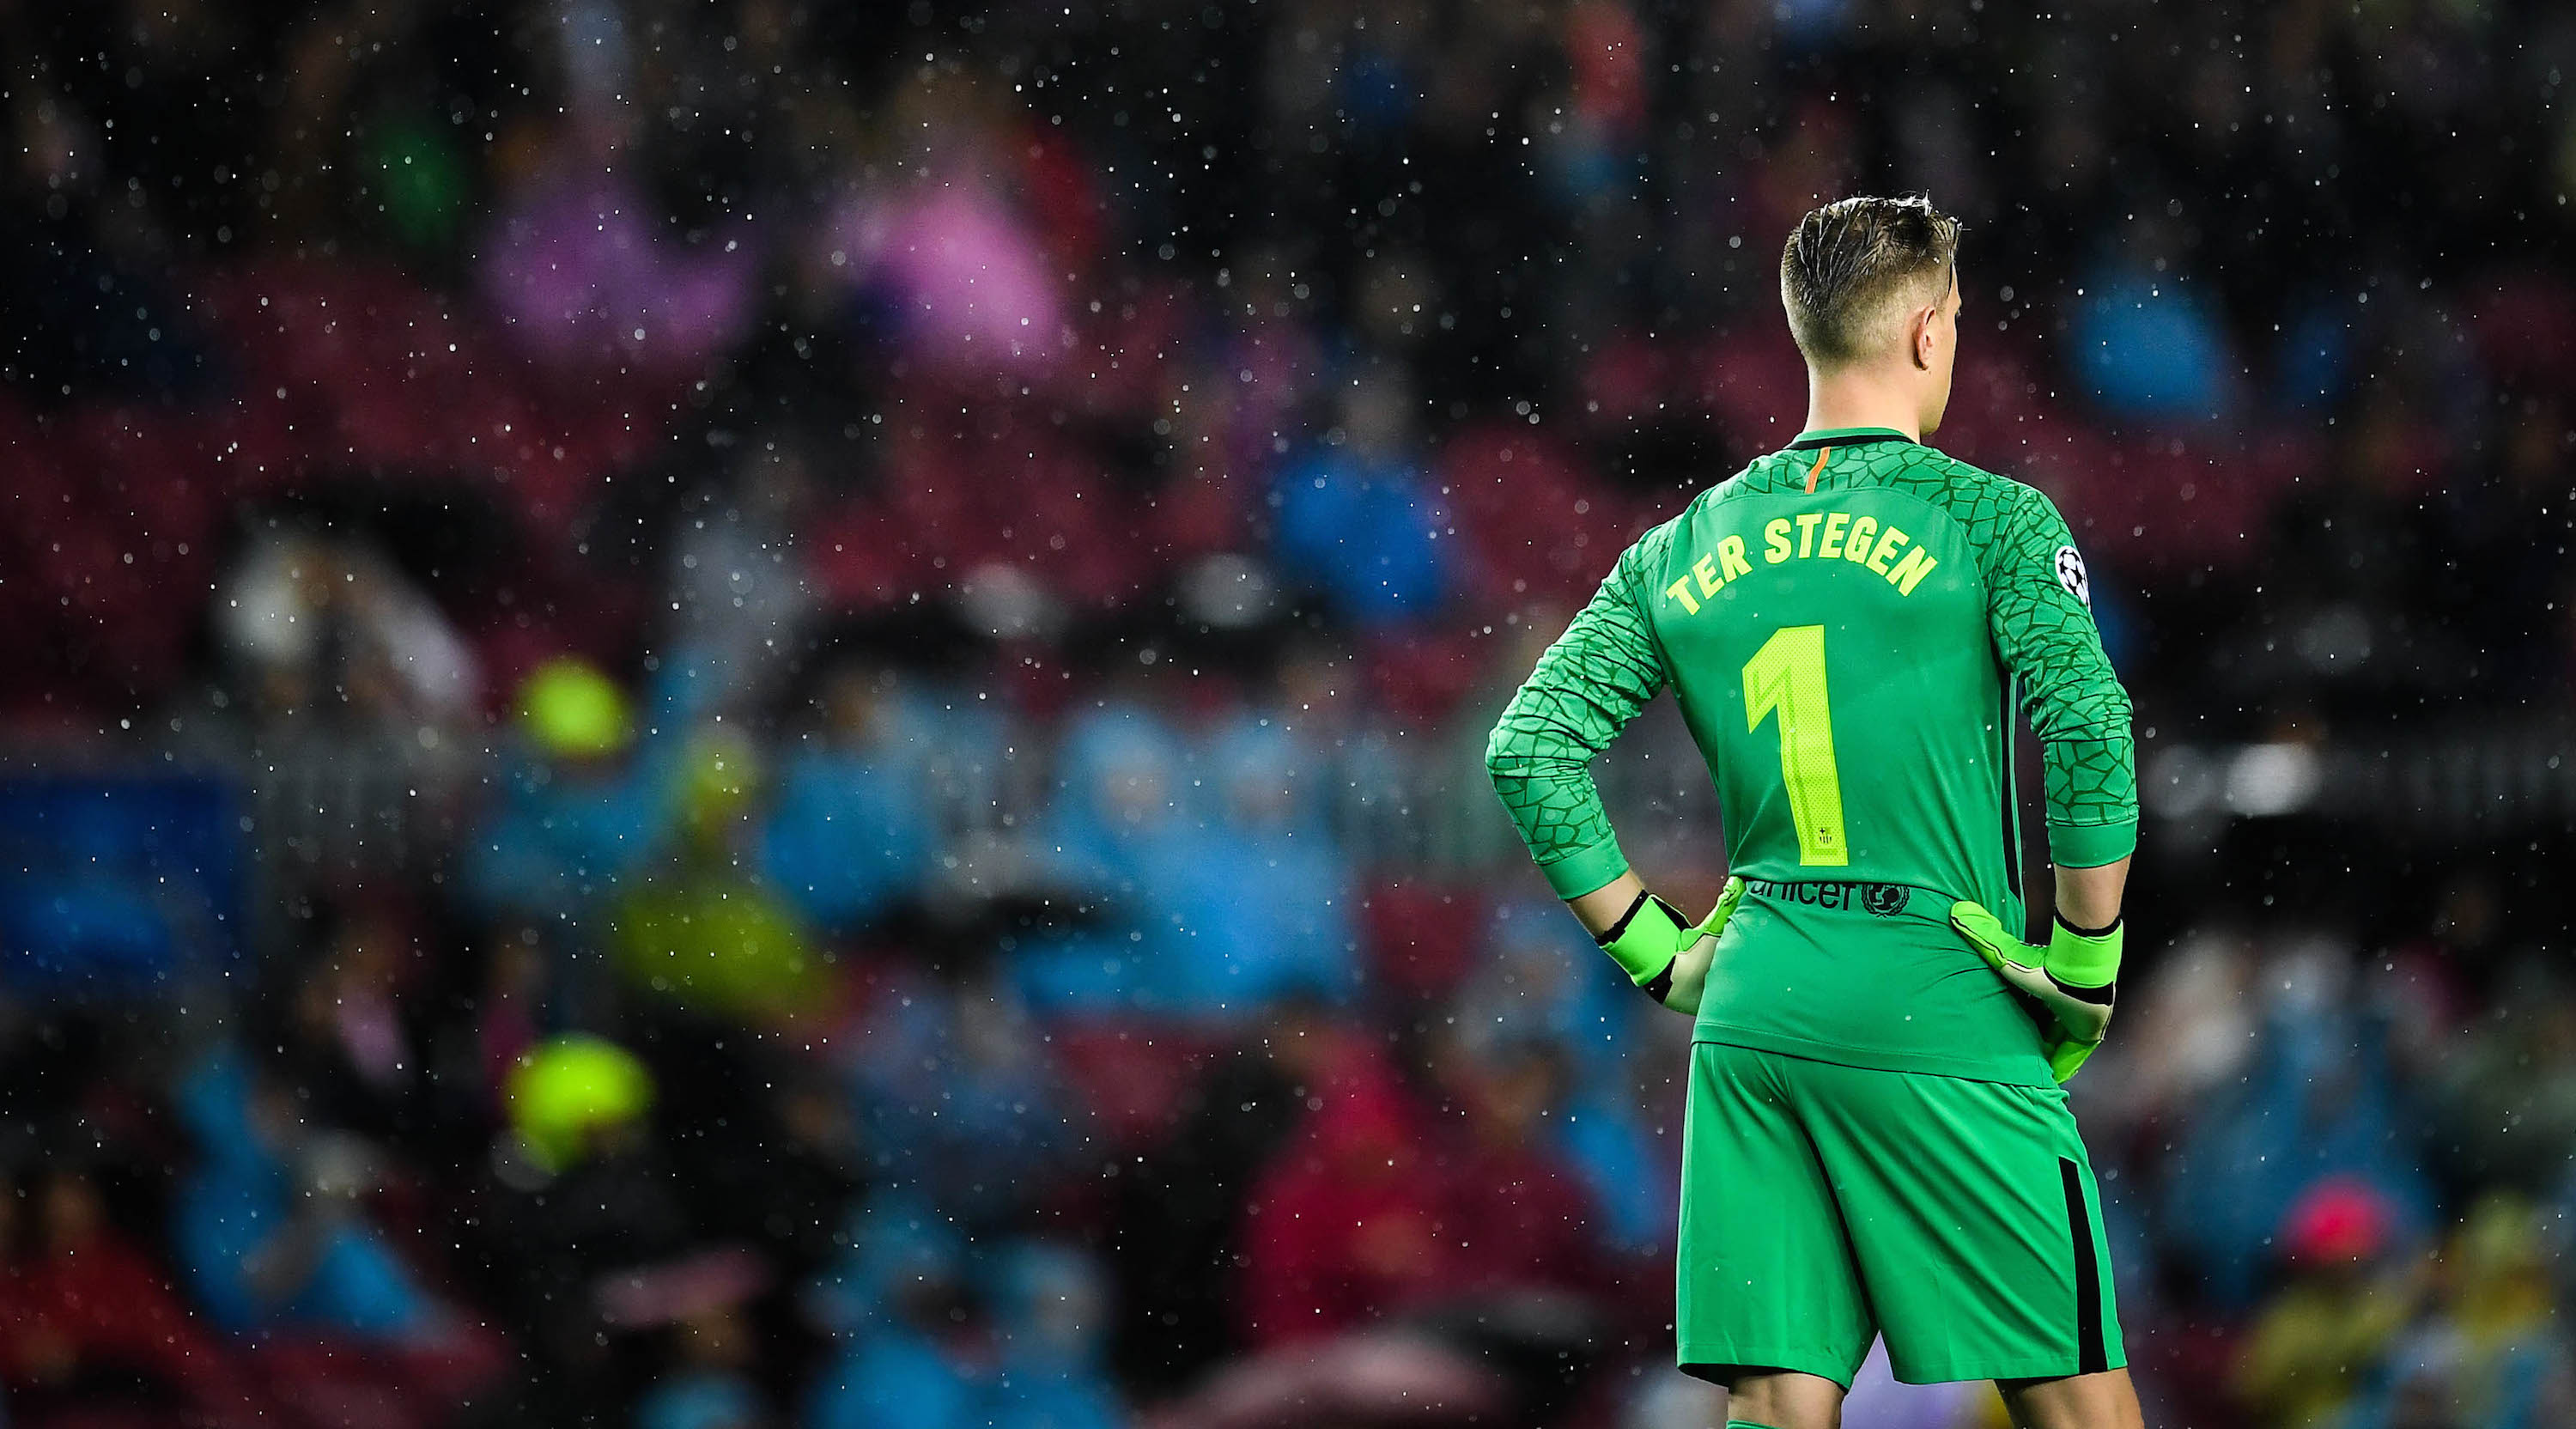 BARCELONA, SPAIN - OCTOBER 18: Marc-Andre ter Stegen of FC Barcelona looks on during the UEFA Champions League group D match between FC Barcelona and Olympiakos Piraeus at Camp Nou on October 18, 2017 in Barcelona, Spain. (Photo by David Ramos/Getty Images)